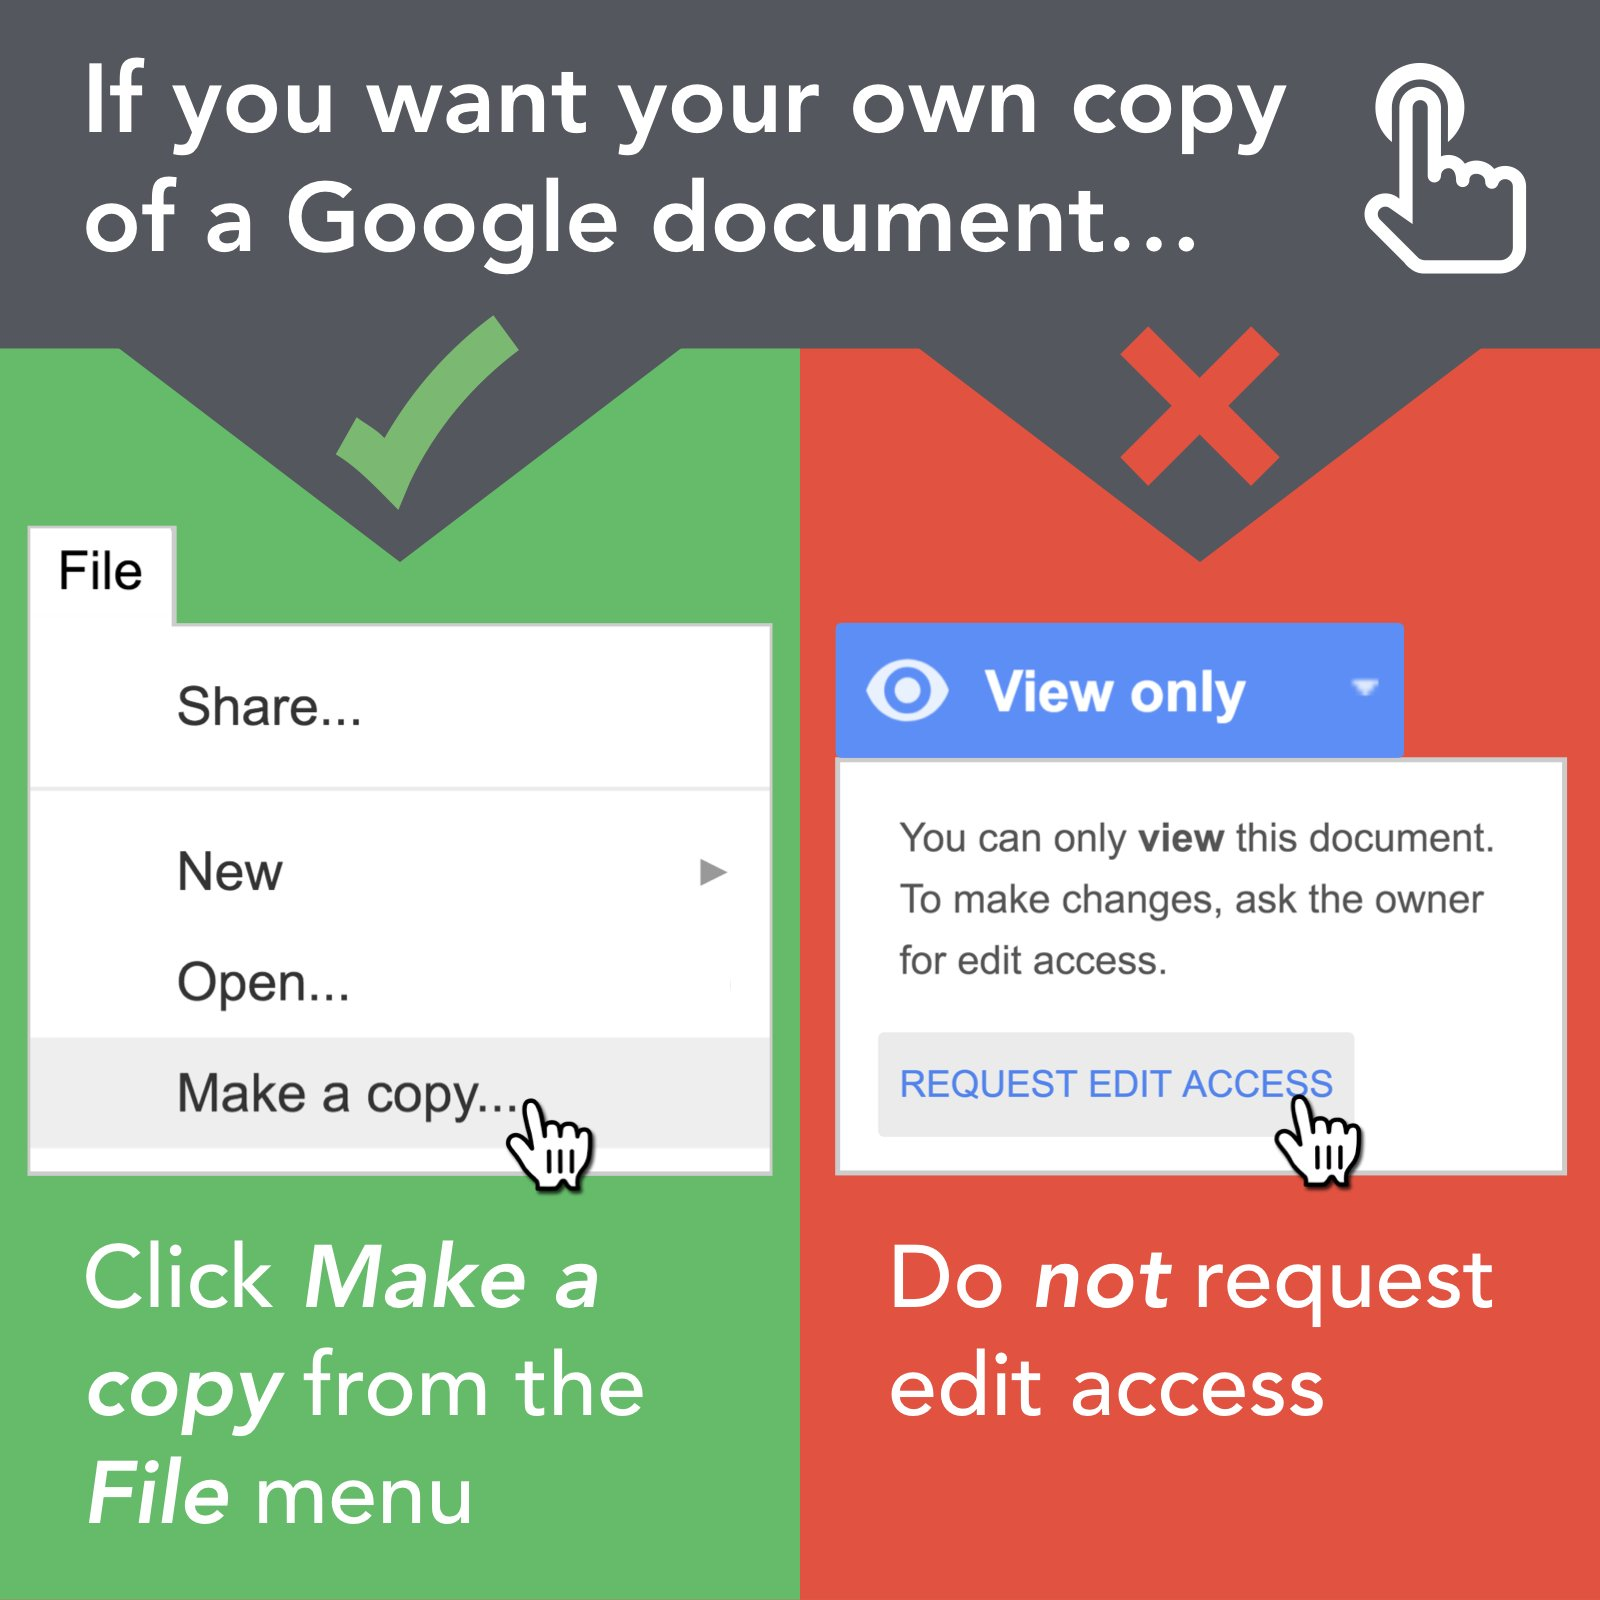 """✅ If you encounter a document shared online as View Only, you can get a copy of the document by clicking """"Make a copy"""" from the File menu. https://t.co/MabTKrSWO4"""